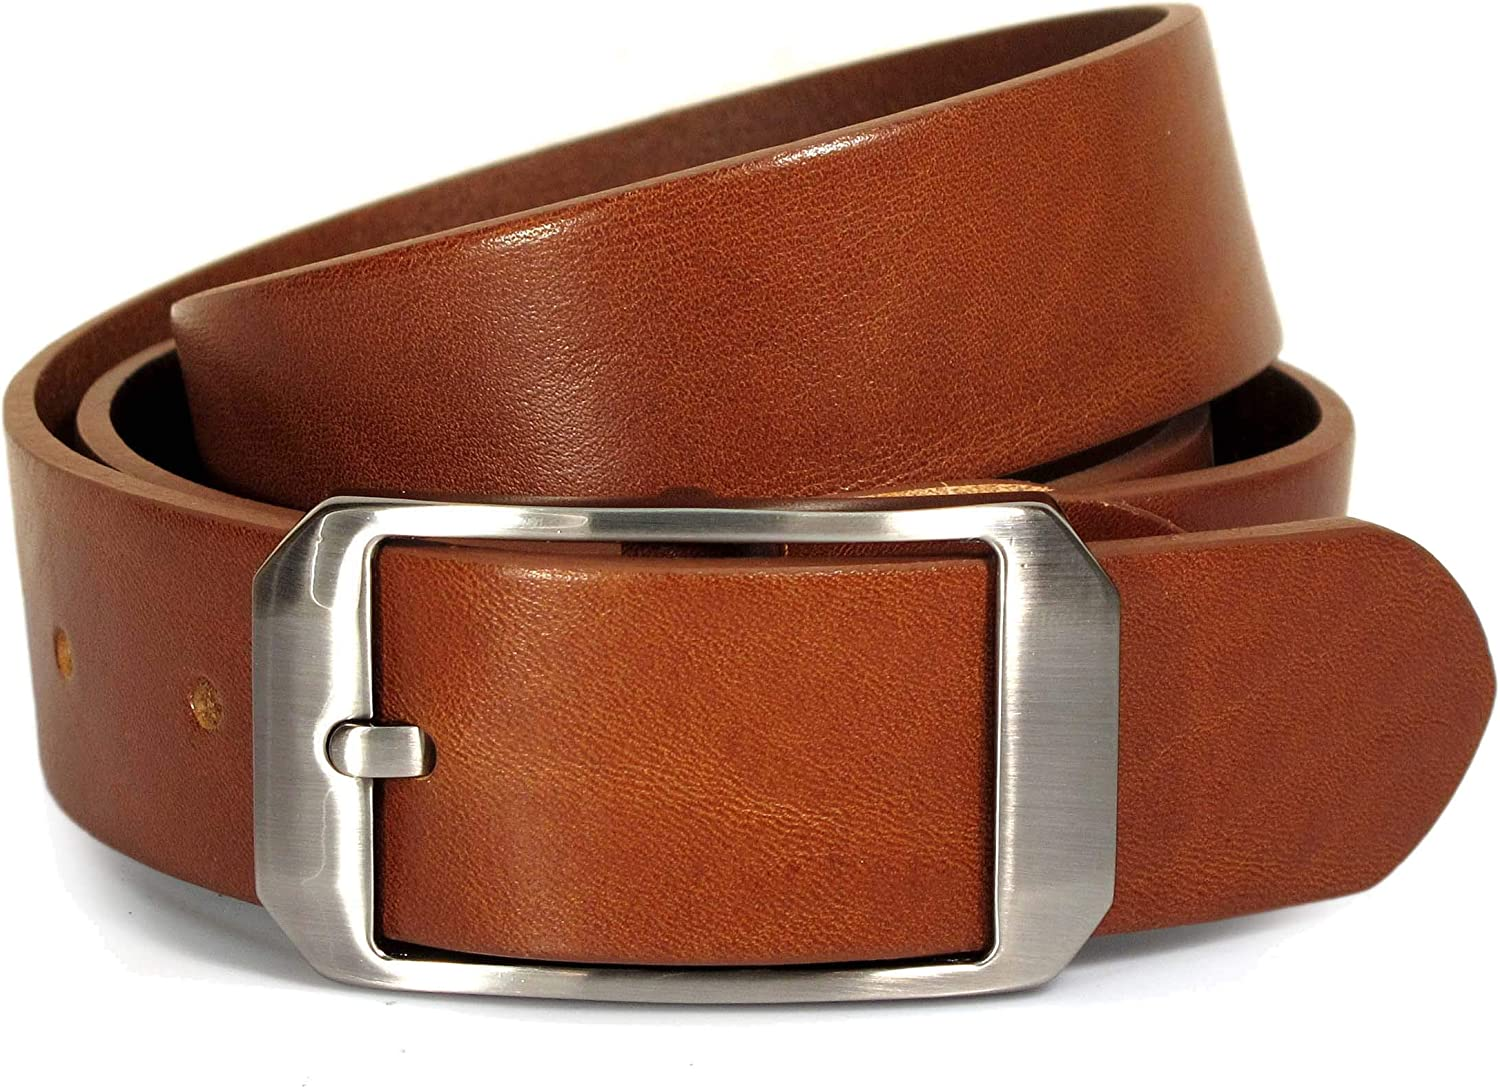 Womens Real Genuine Leather Tan Brown Belt 1.25 Wide S-L Thick Casual Jeans UW5